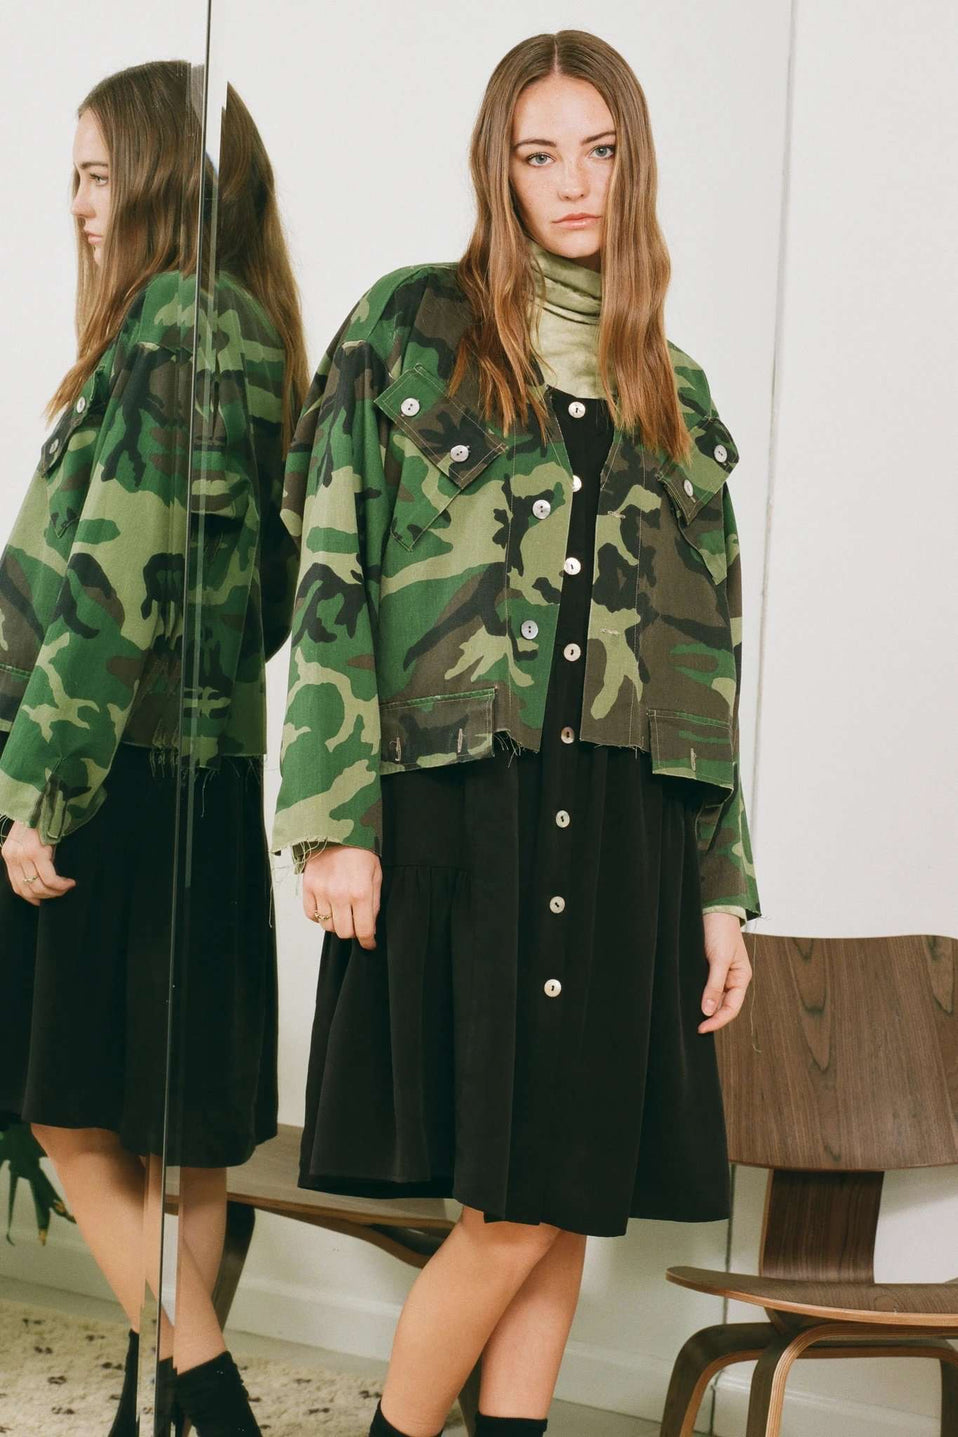 The Military Jacket in Army